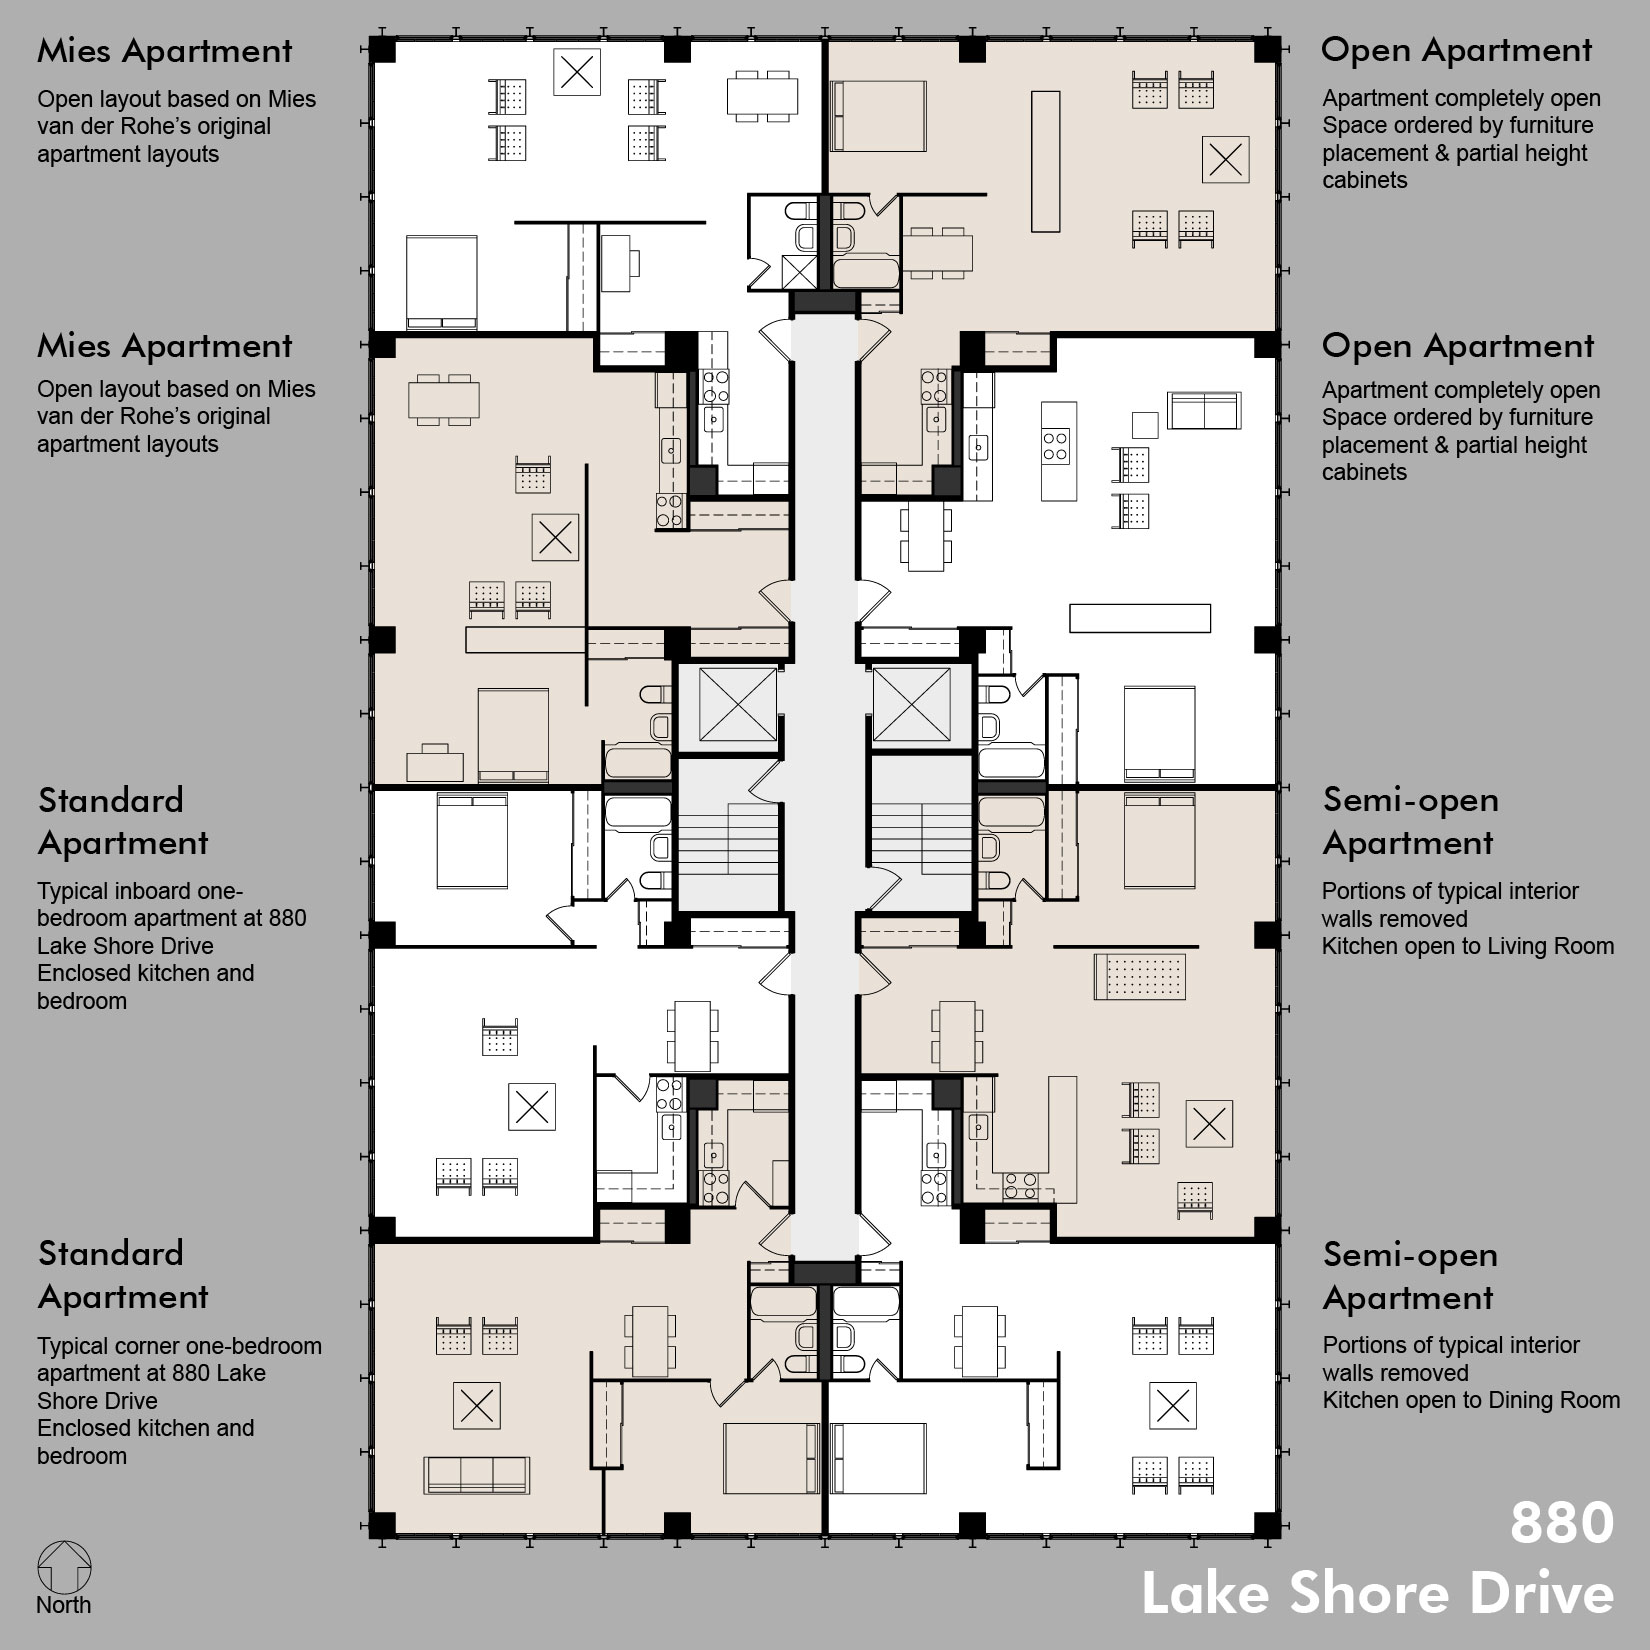 880_Floor_Plans_Including_Standard_Apt.jpg